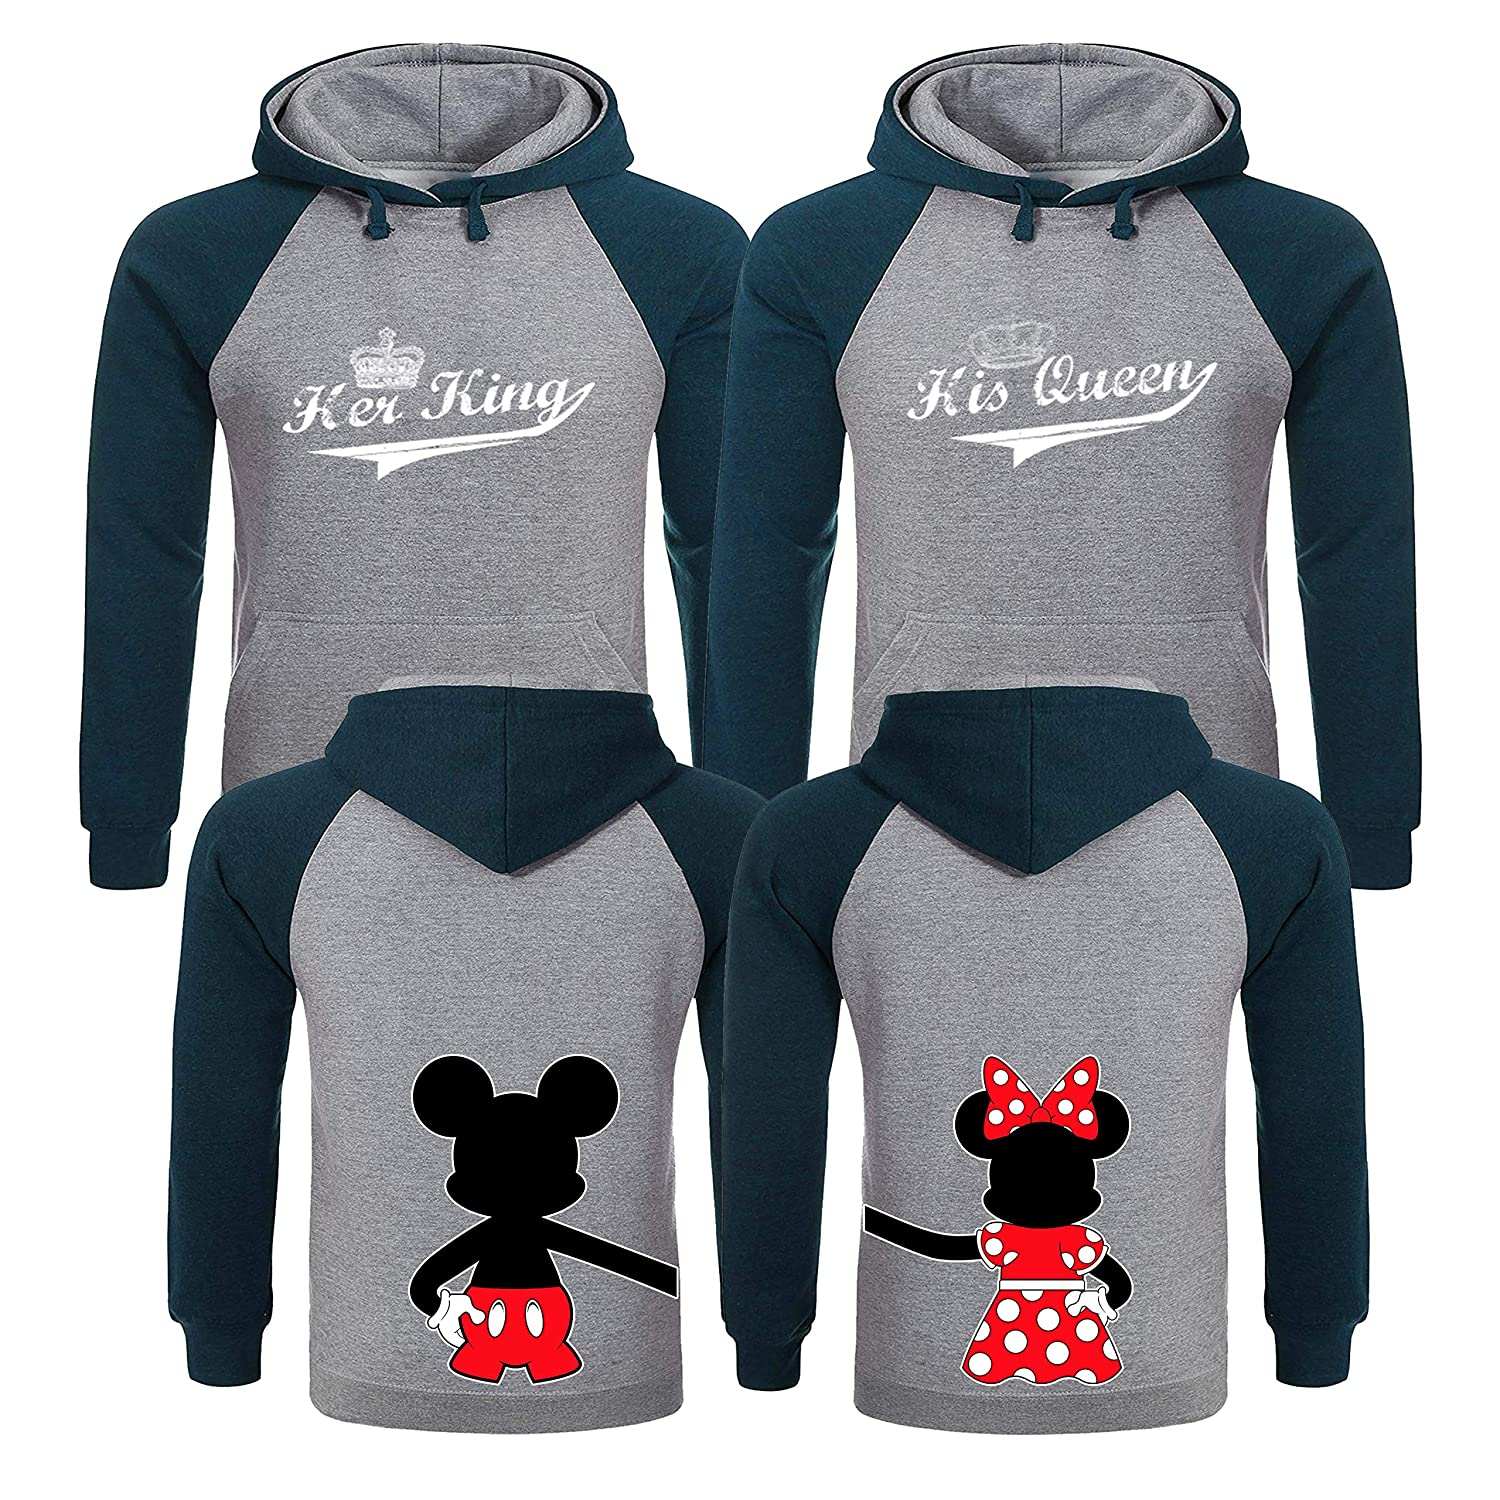 King and Queen Hoodies King and Queen Matching Couple Shirts His and Hers Couples Gifts